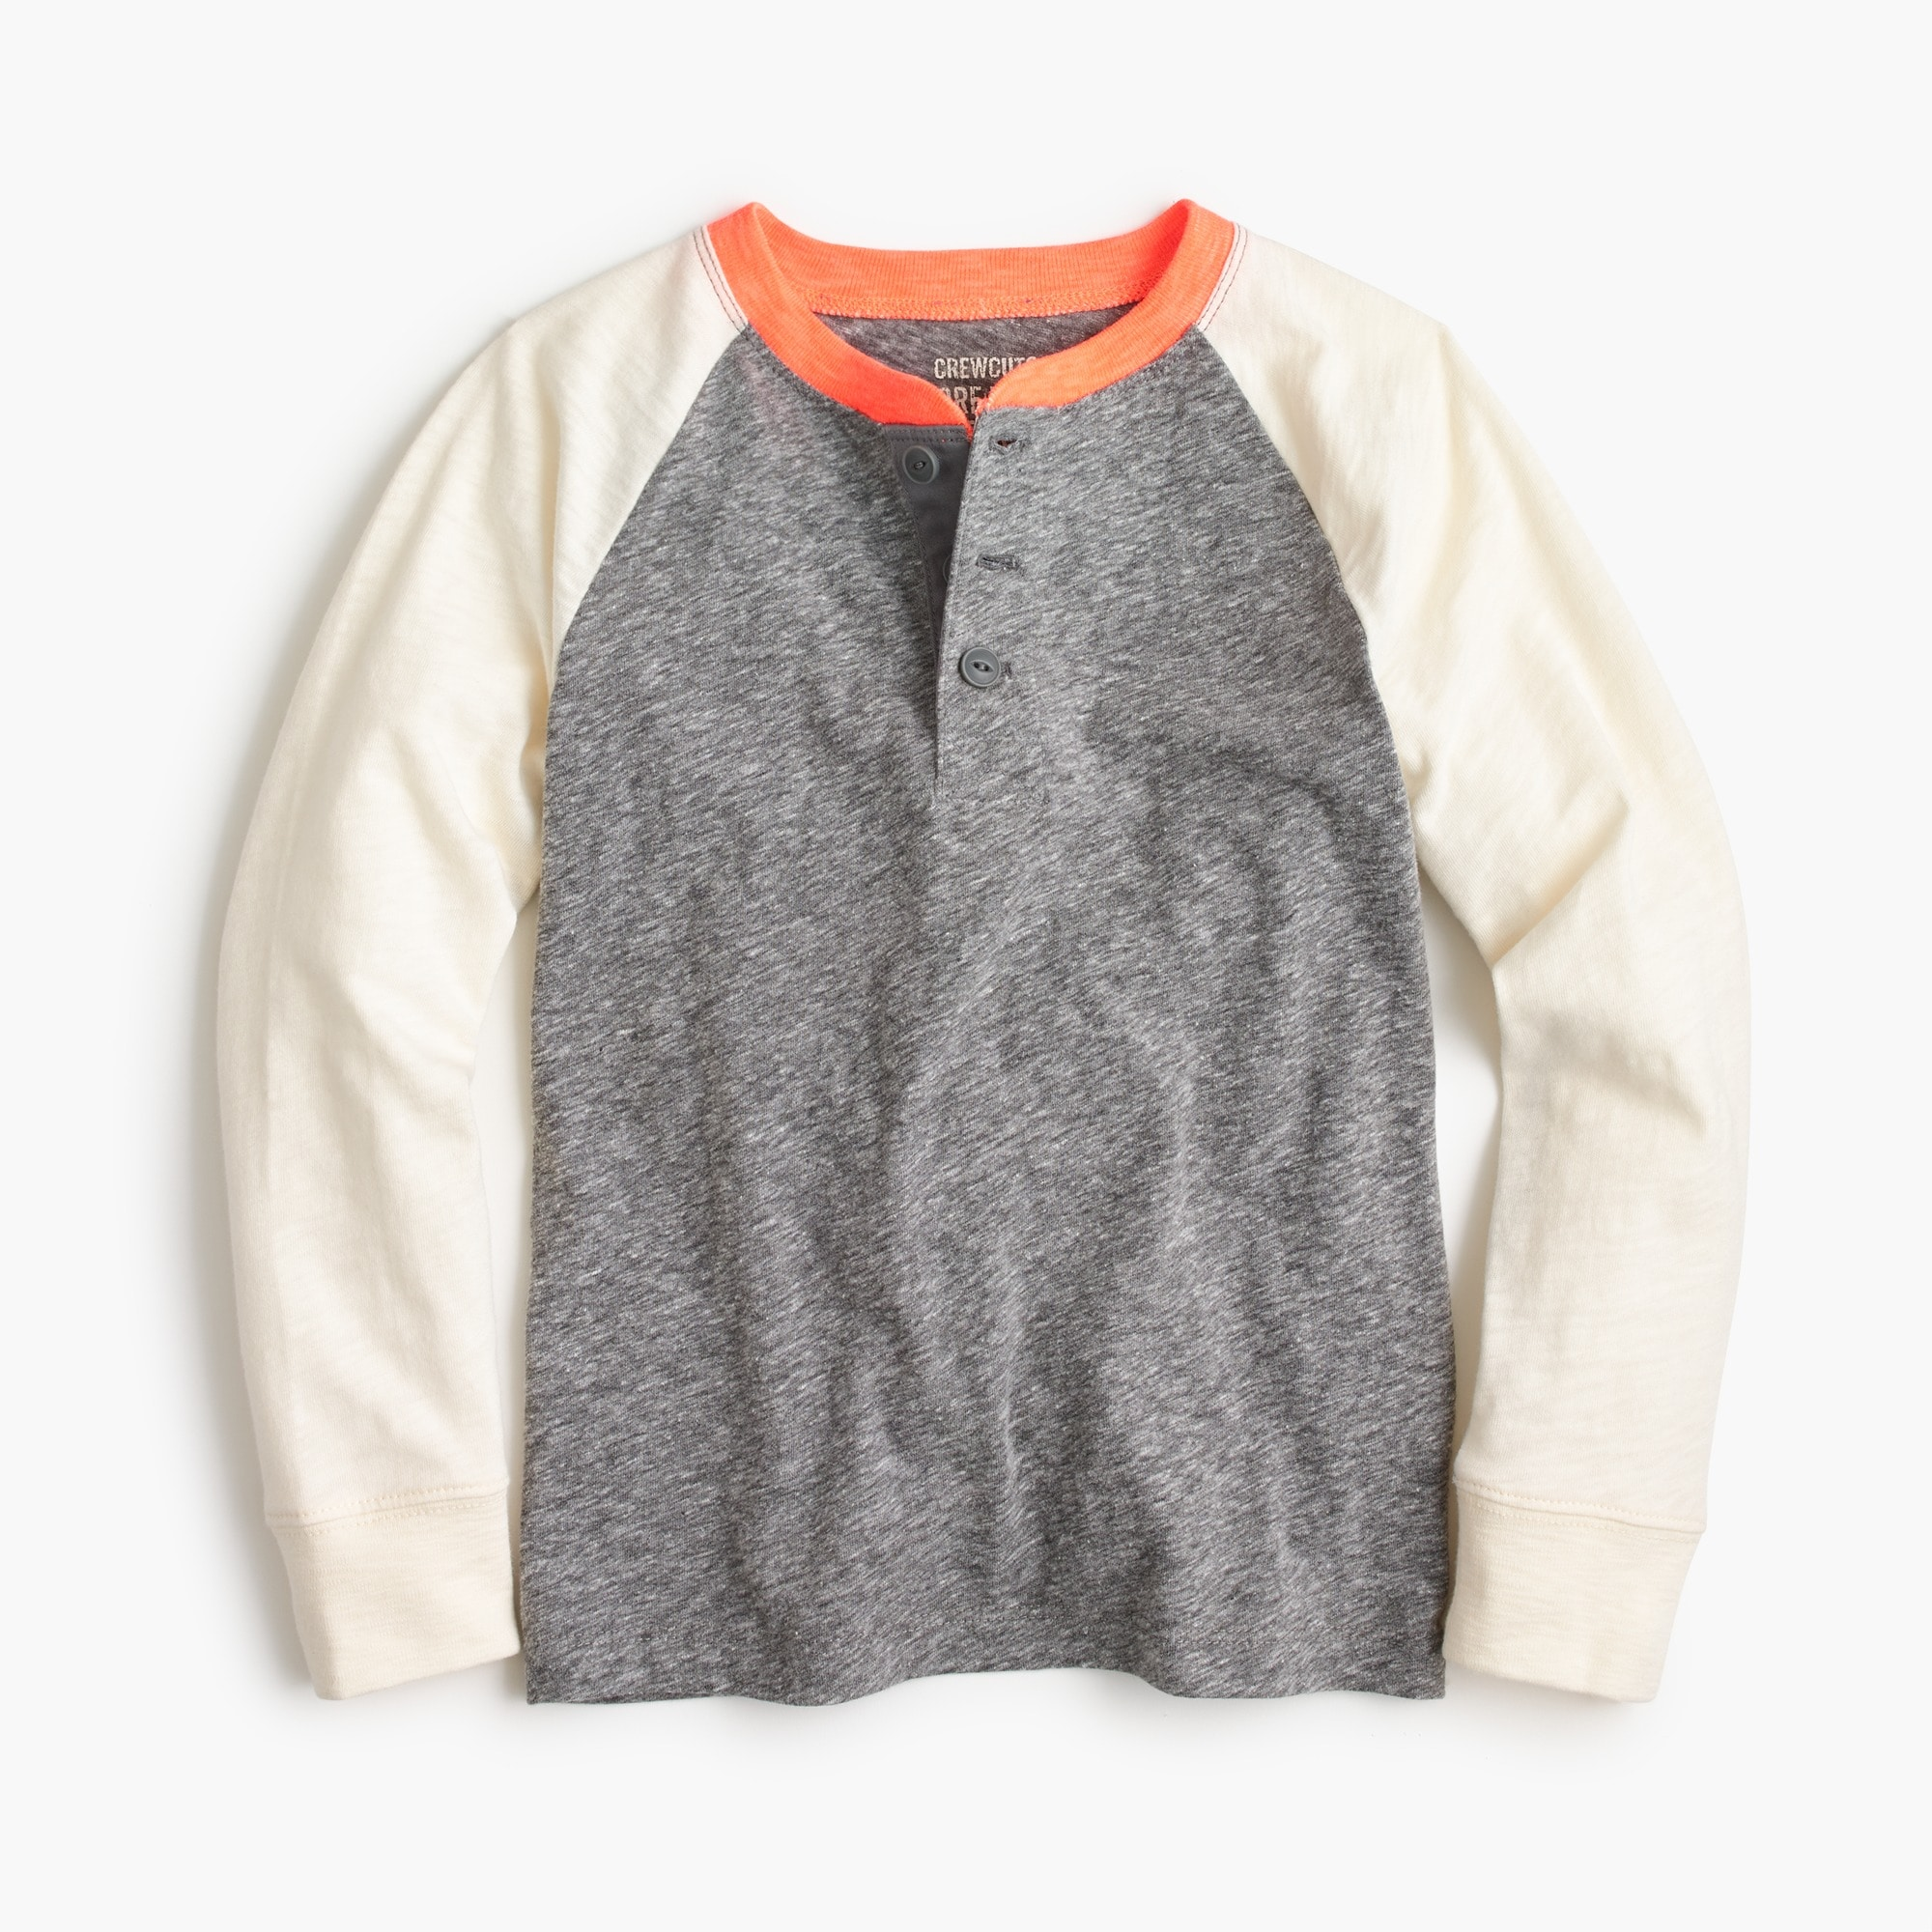 Image 1 for Boys' baseball henley shirt